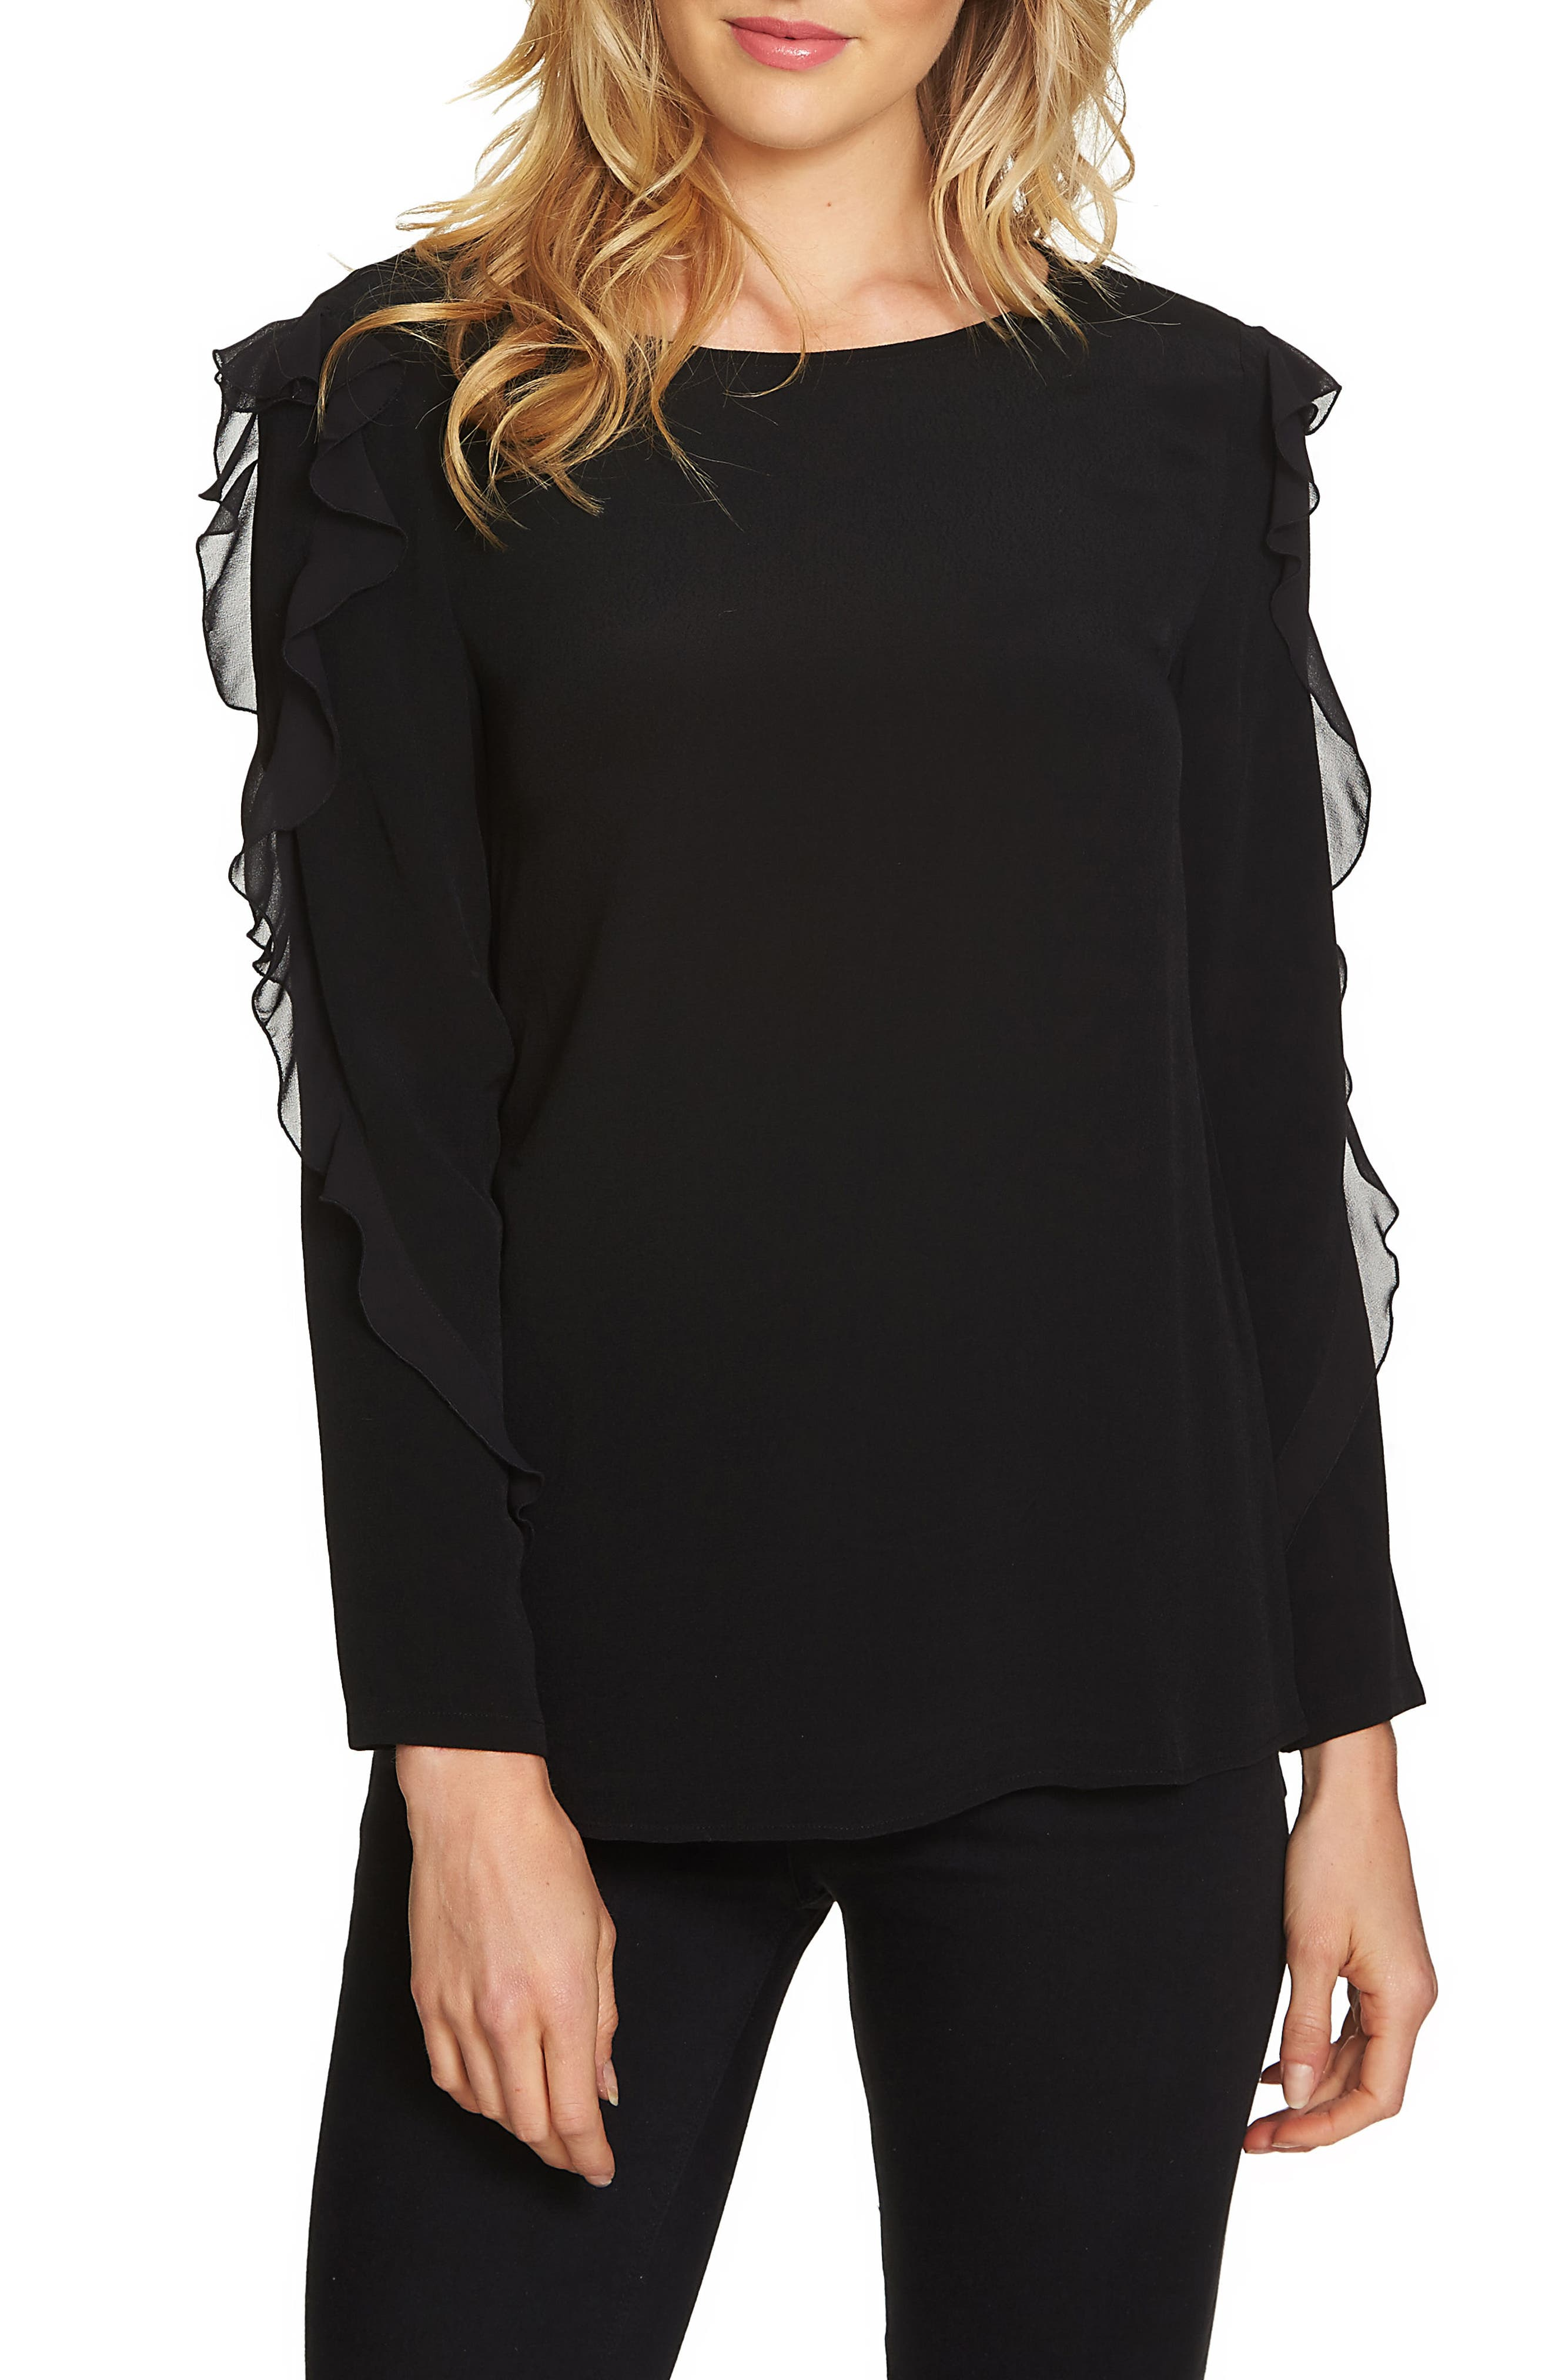 Alternate Image 1 Selected - 1.STATE Ruffle Sleeve Top